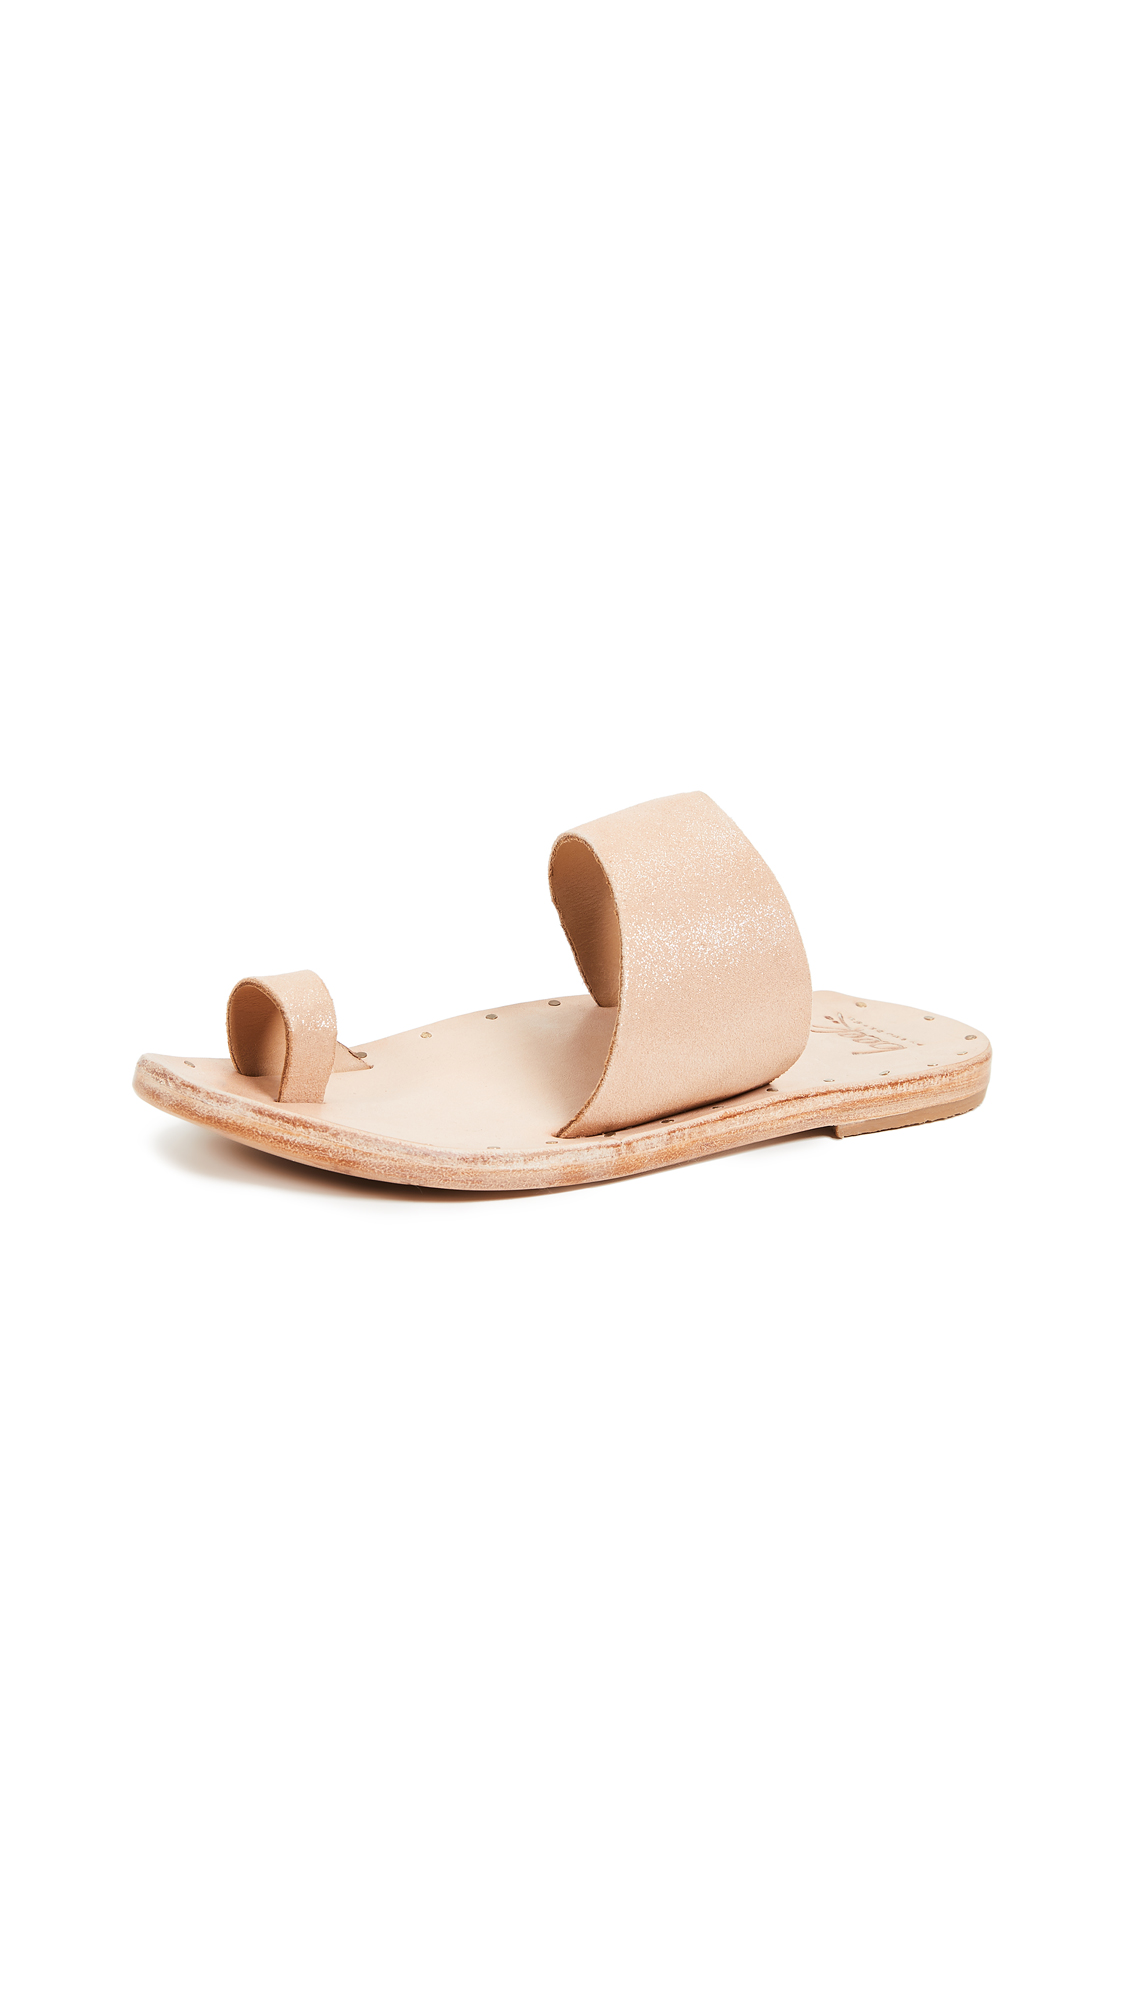 beek Finch Toe Ring Slides - Apricot/Natural